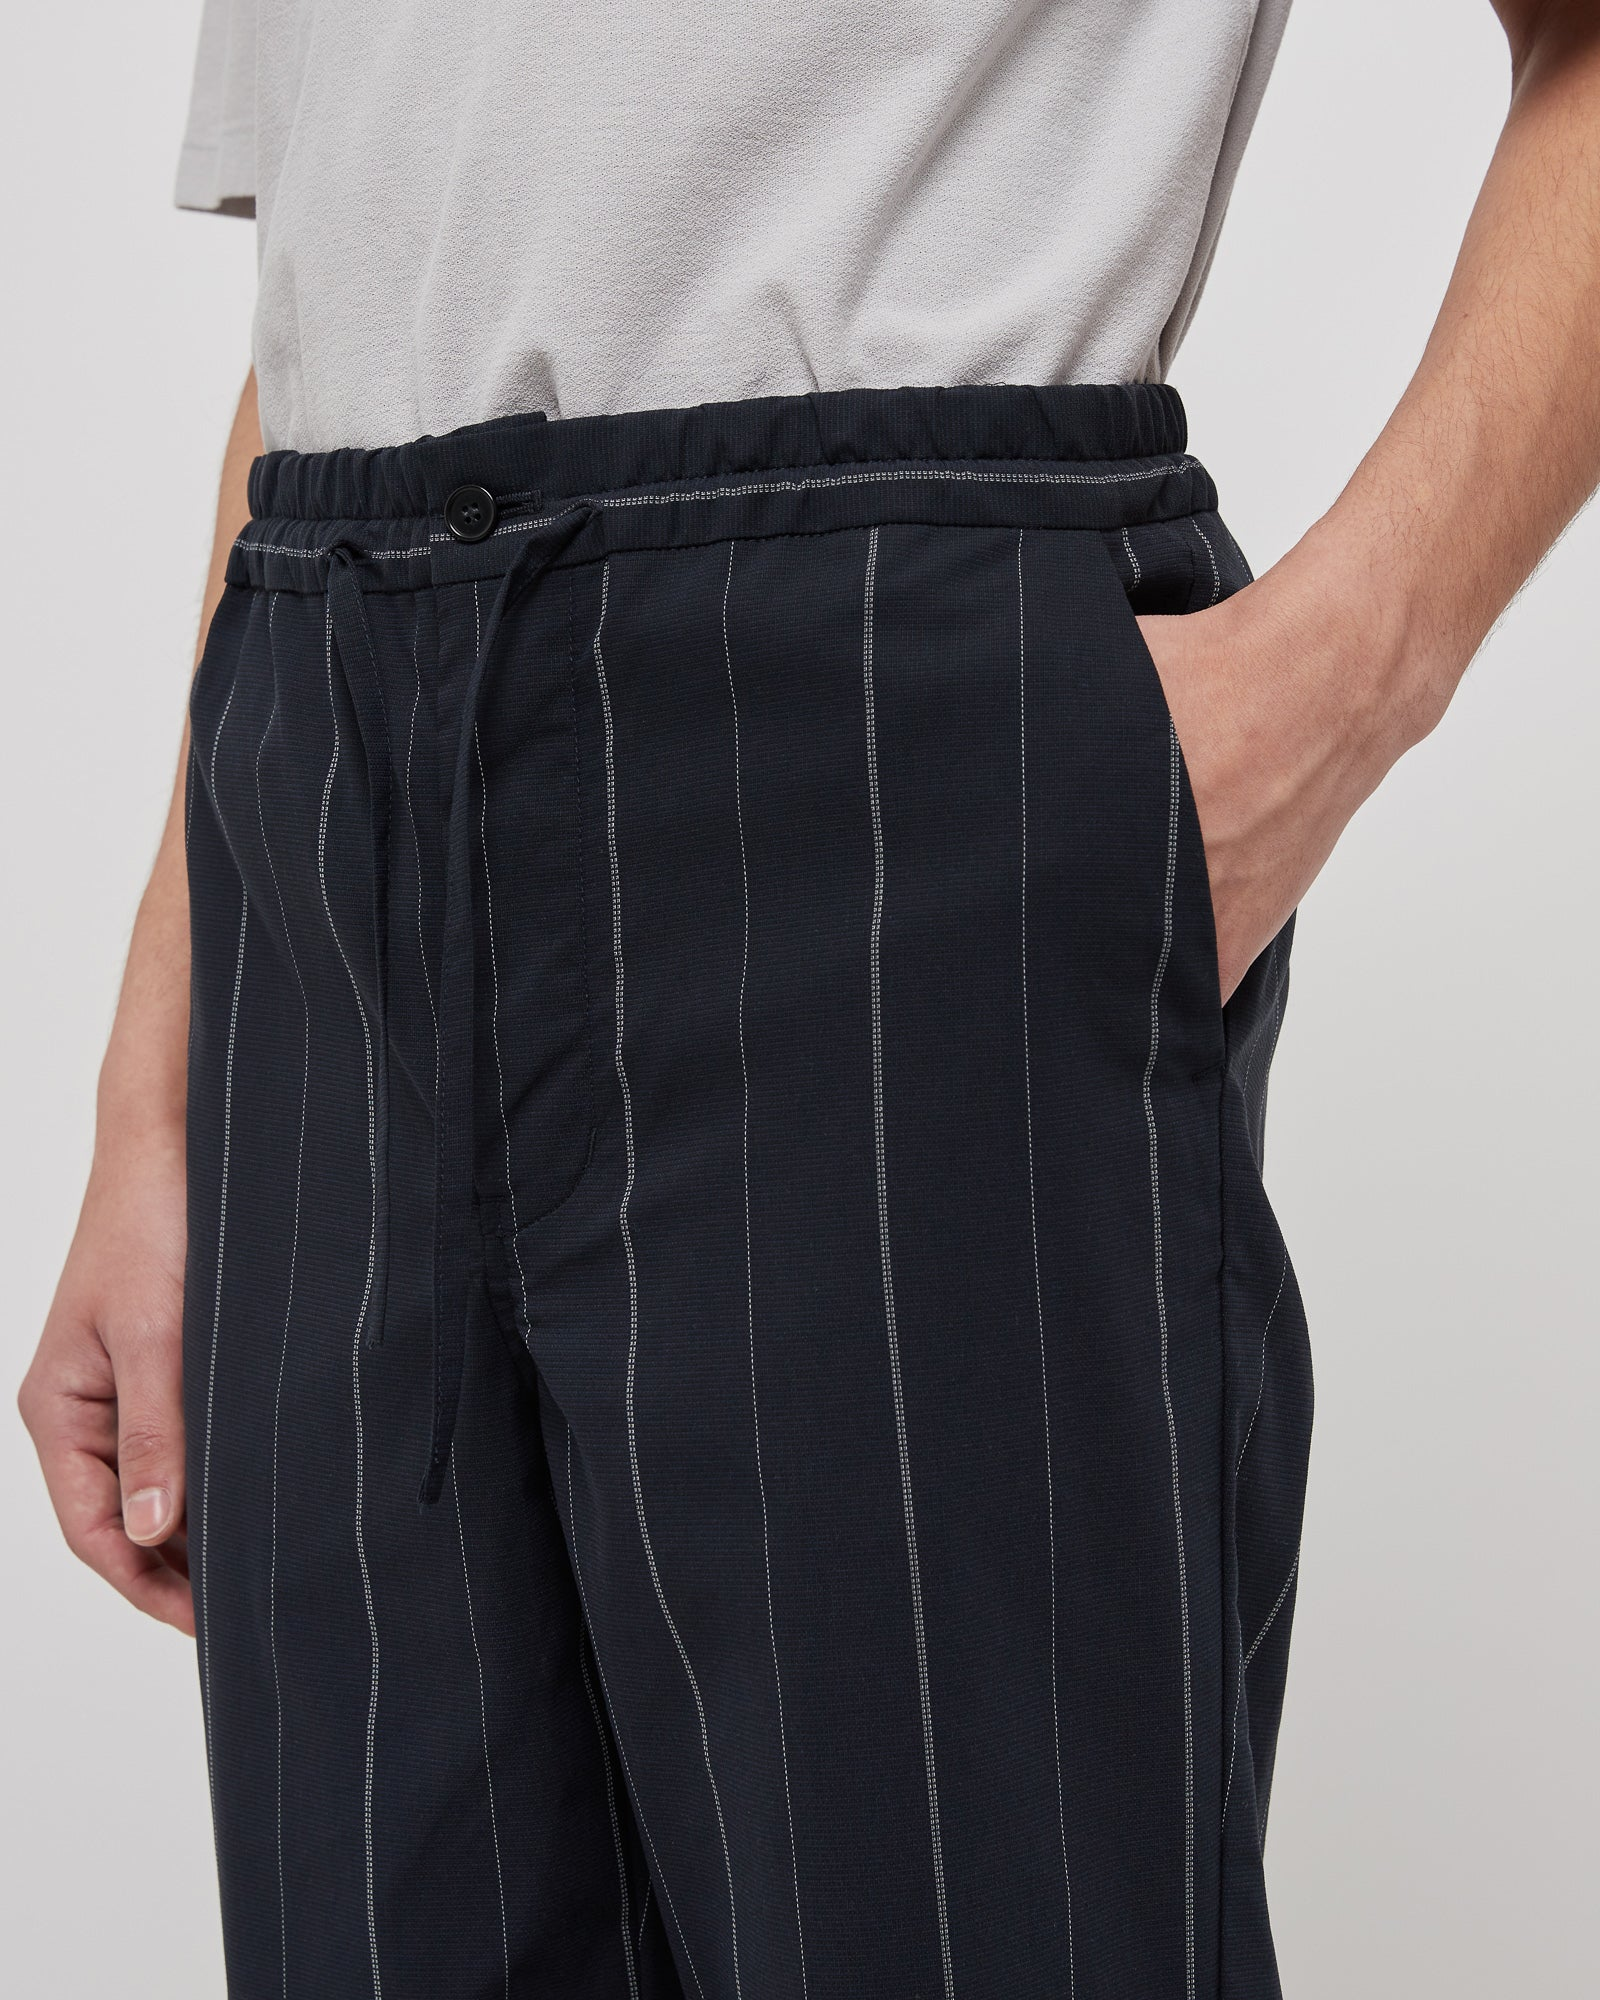 Regular Straight Pants in Navy Stripe